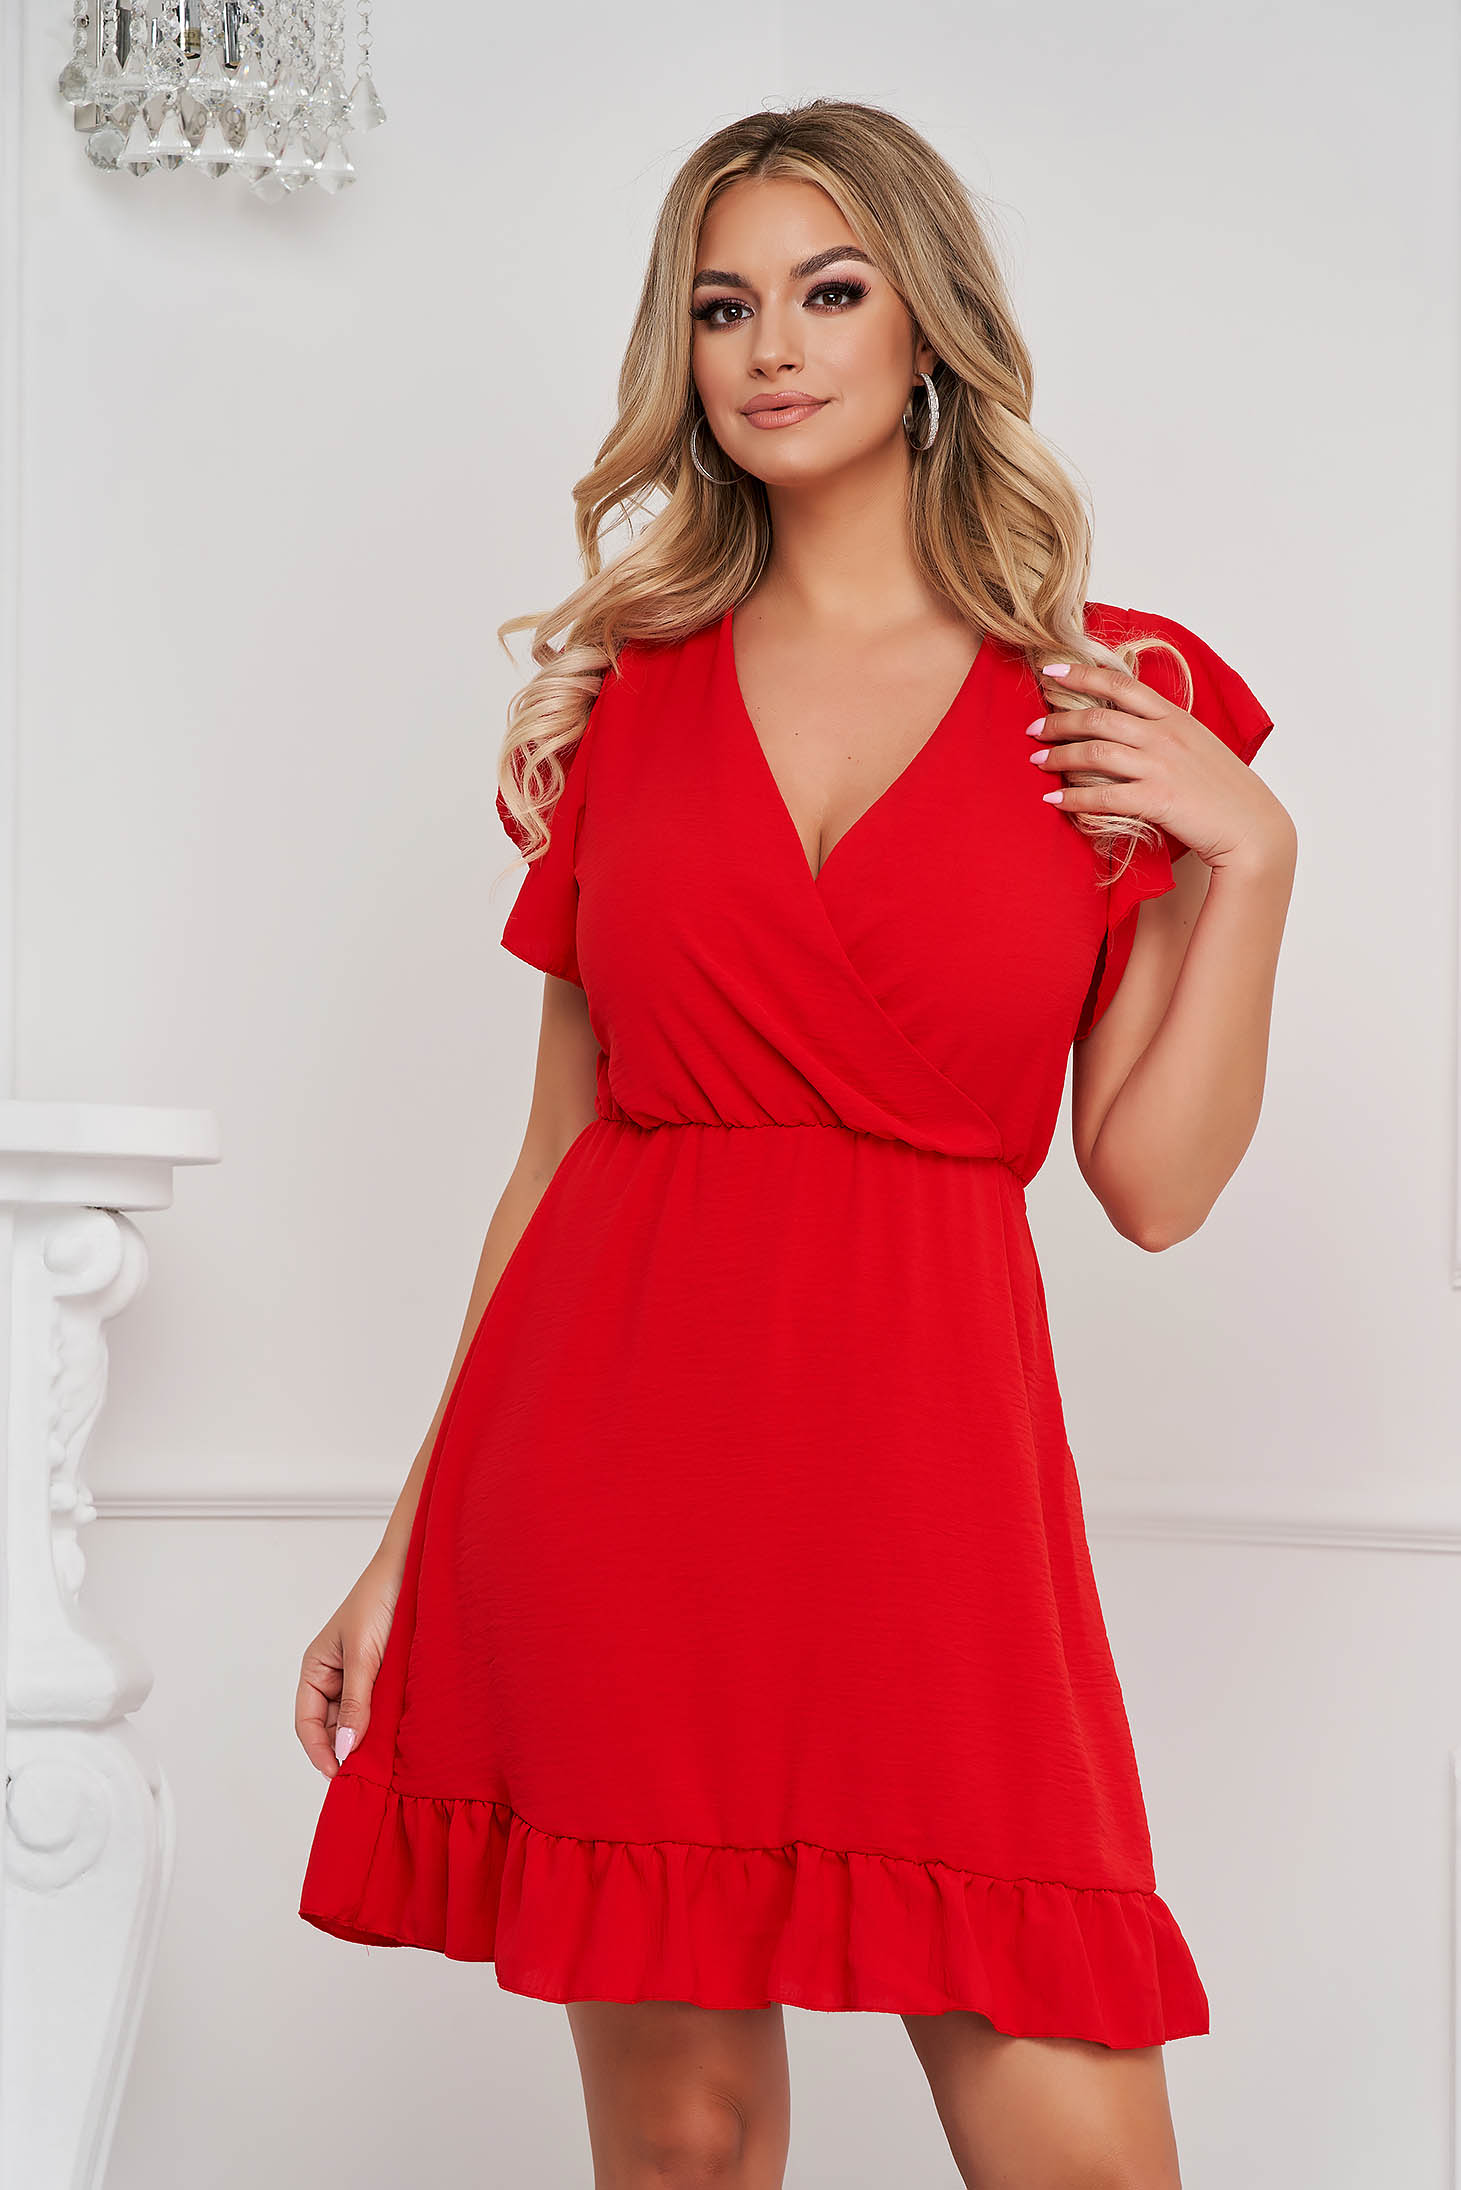 Red dress short cut cloche with elastic waist wrinkled texture with ruffle details